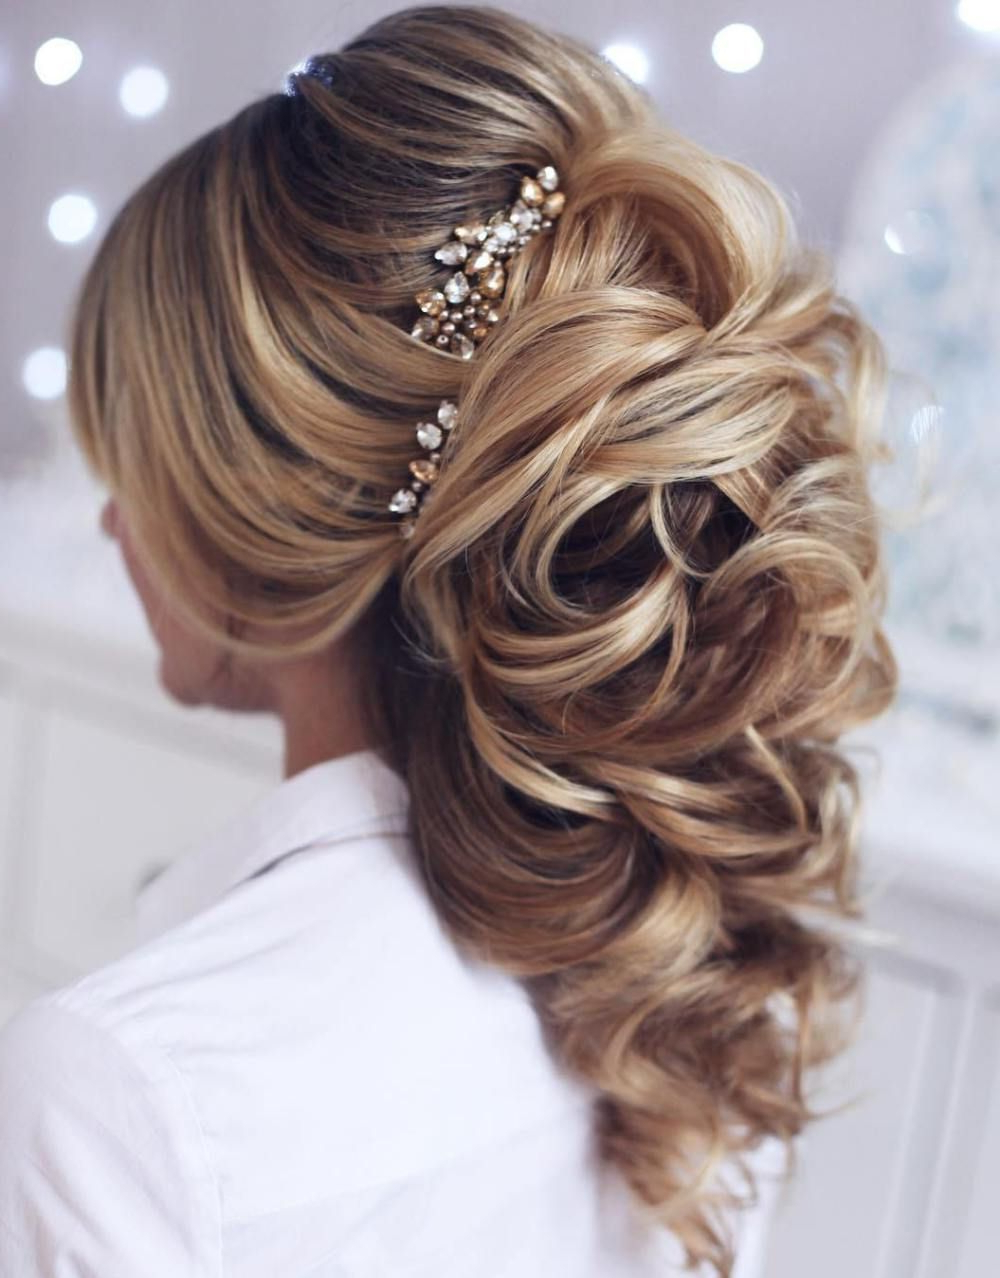 40 Gorgeous Wedding Hairstyles For Long Hair (View 1 of 20)